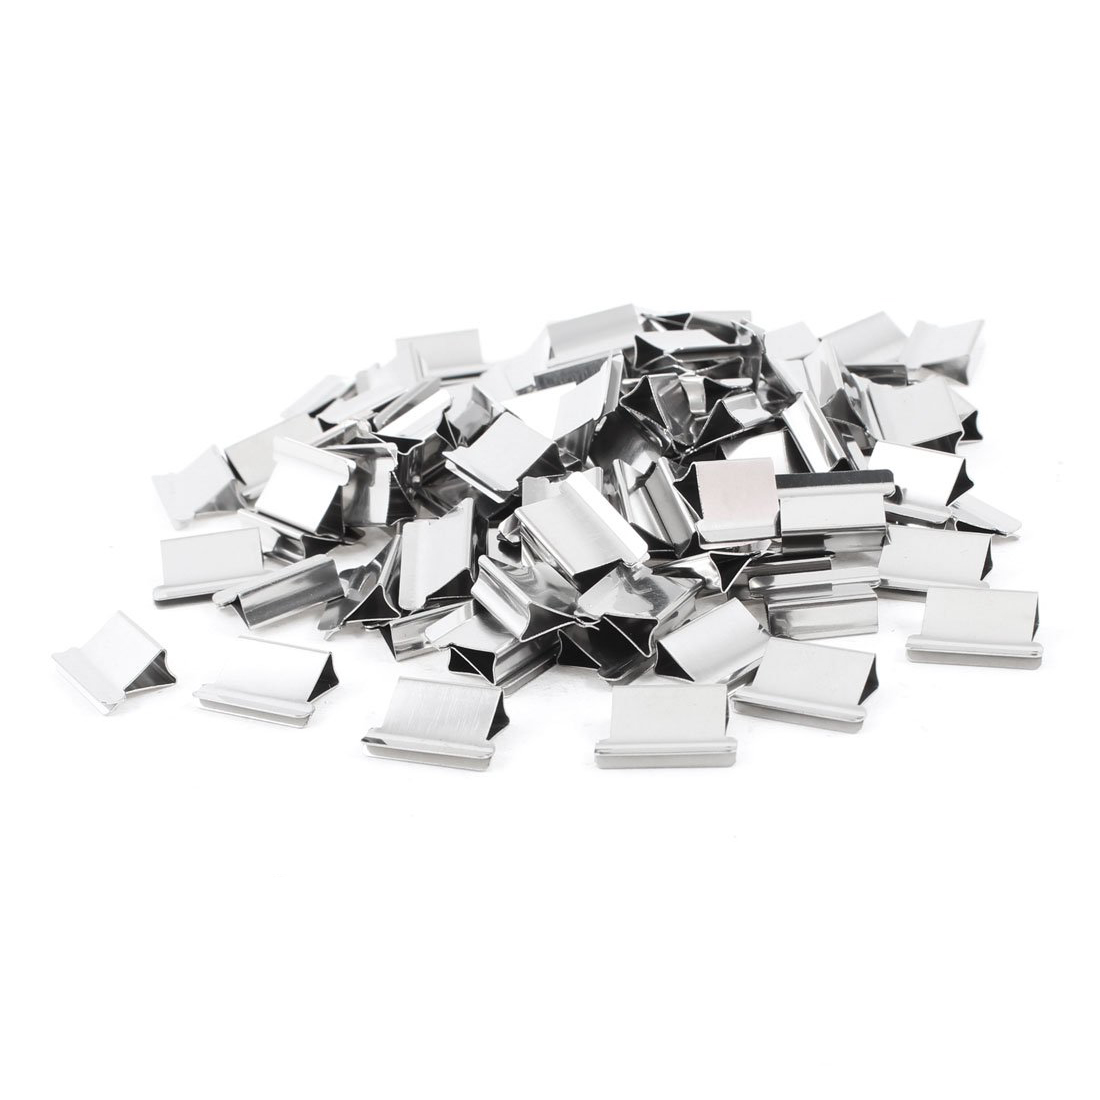 SOSW-100 Pcs 15mm X 10mm X 5mm Metal Reusable Refill For Clam Clips Dispenser